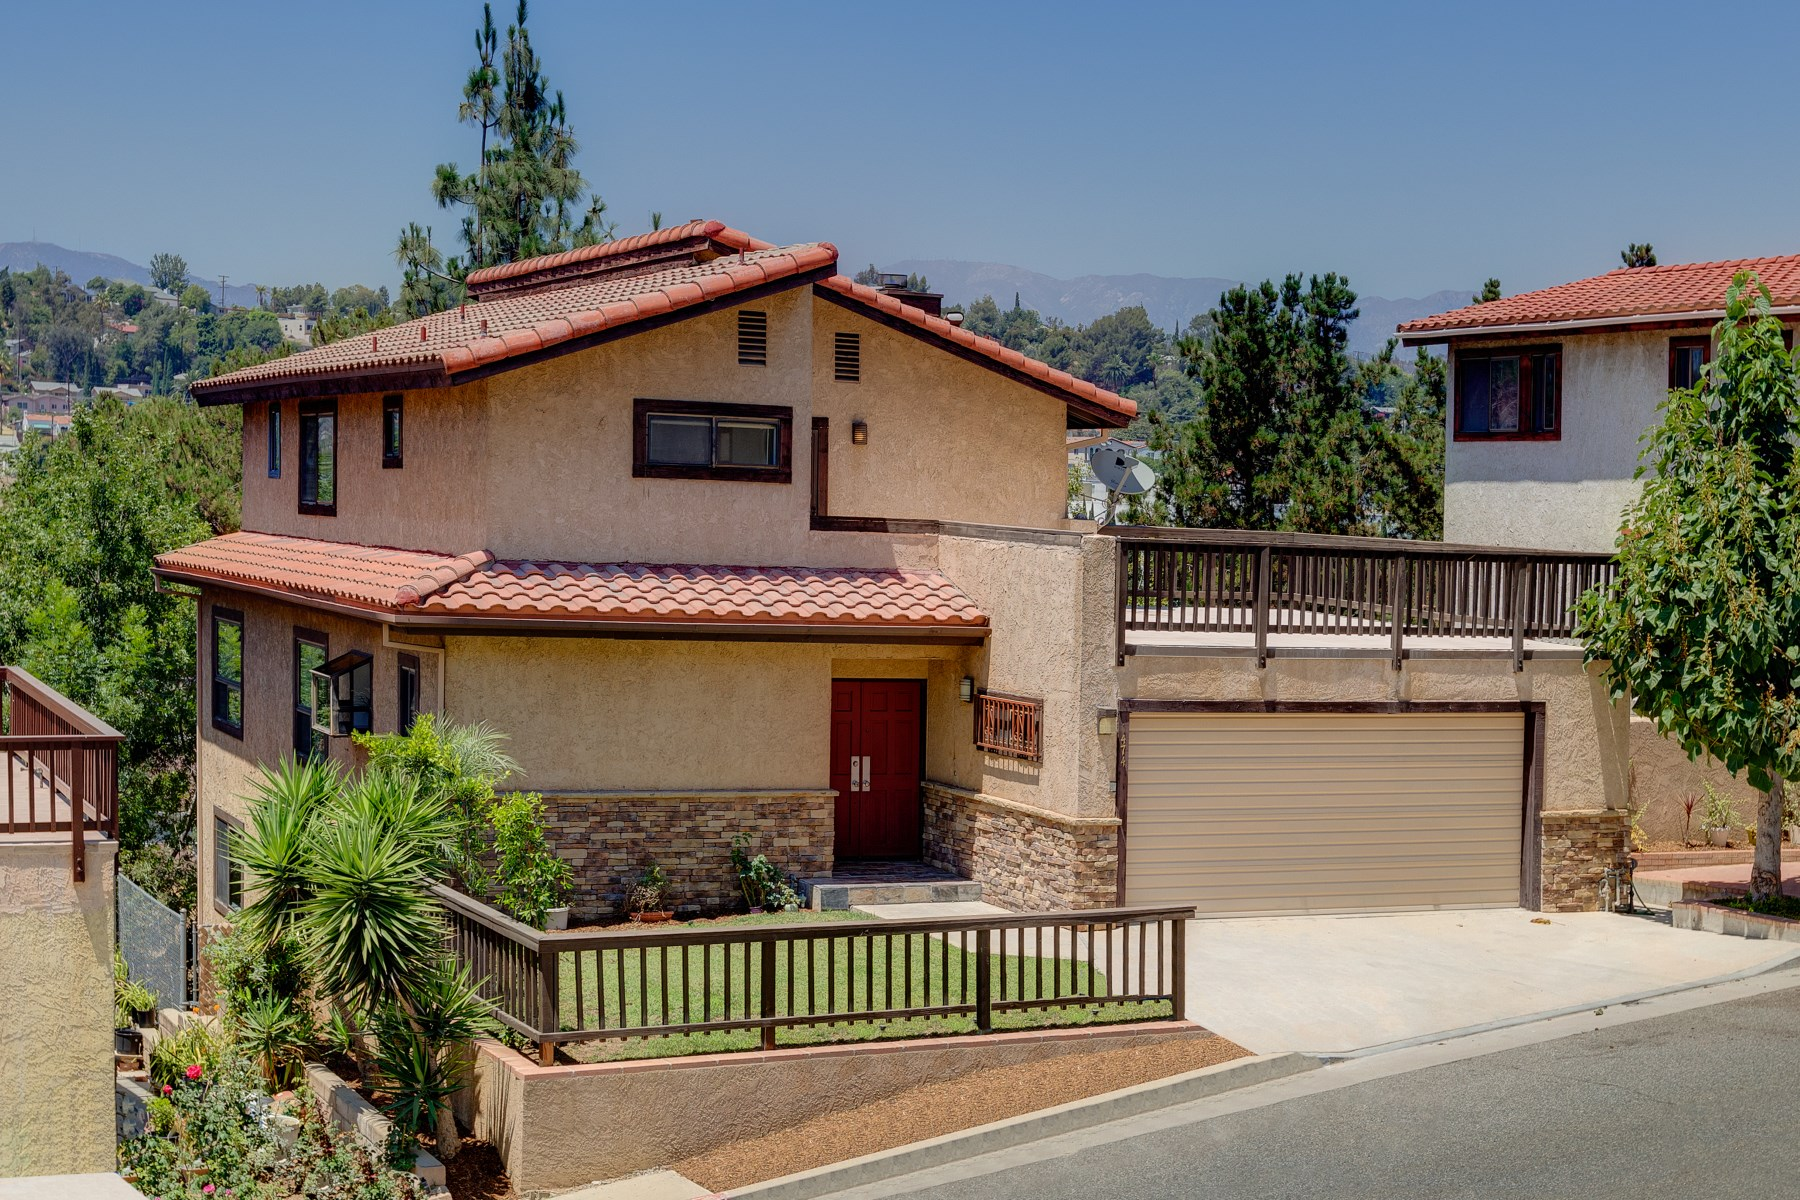 Single Family Home for Sale at 1474 West Avenue 43 Glassell Park, Los Angeles, California, 90065 United States